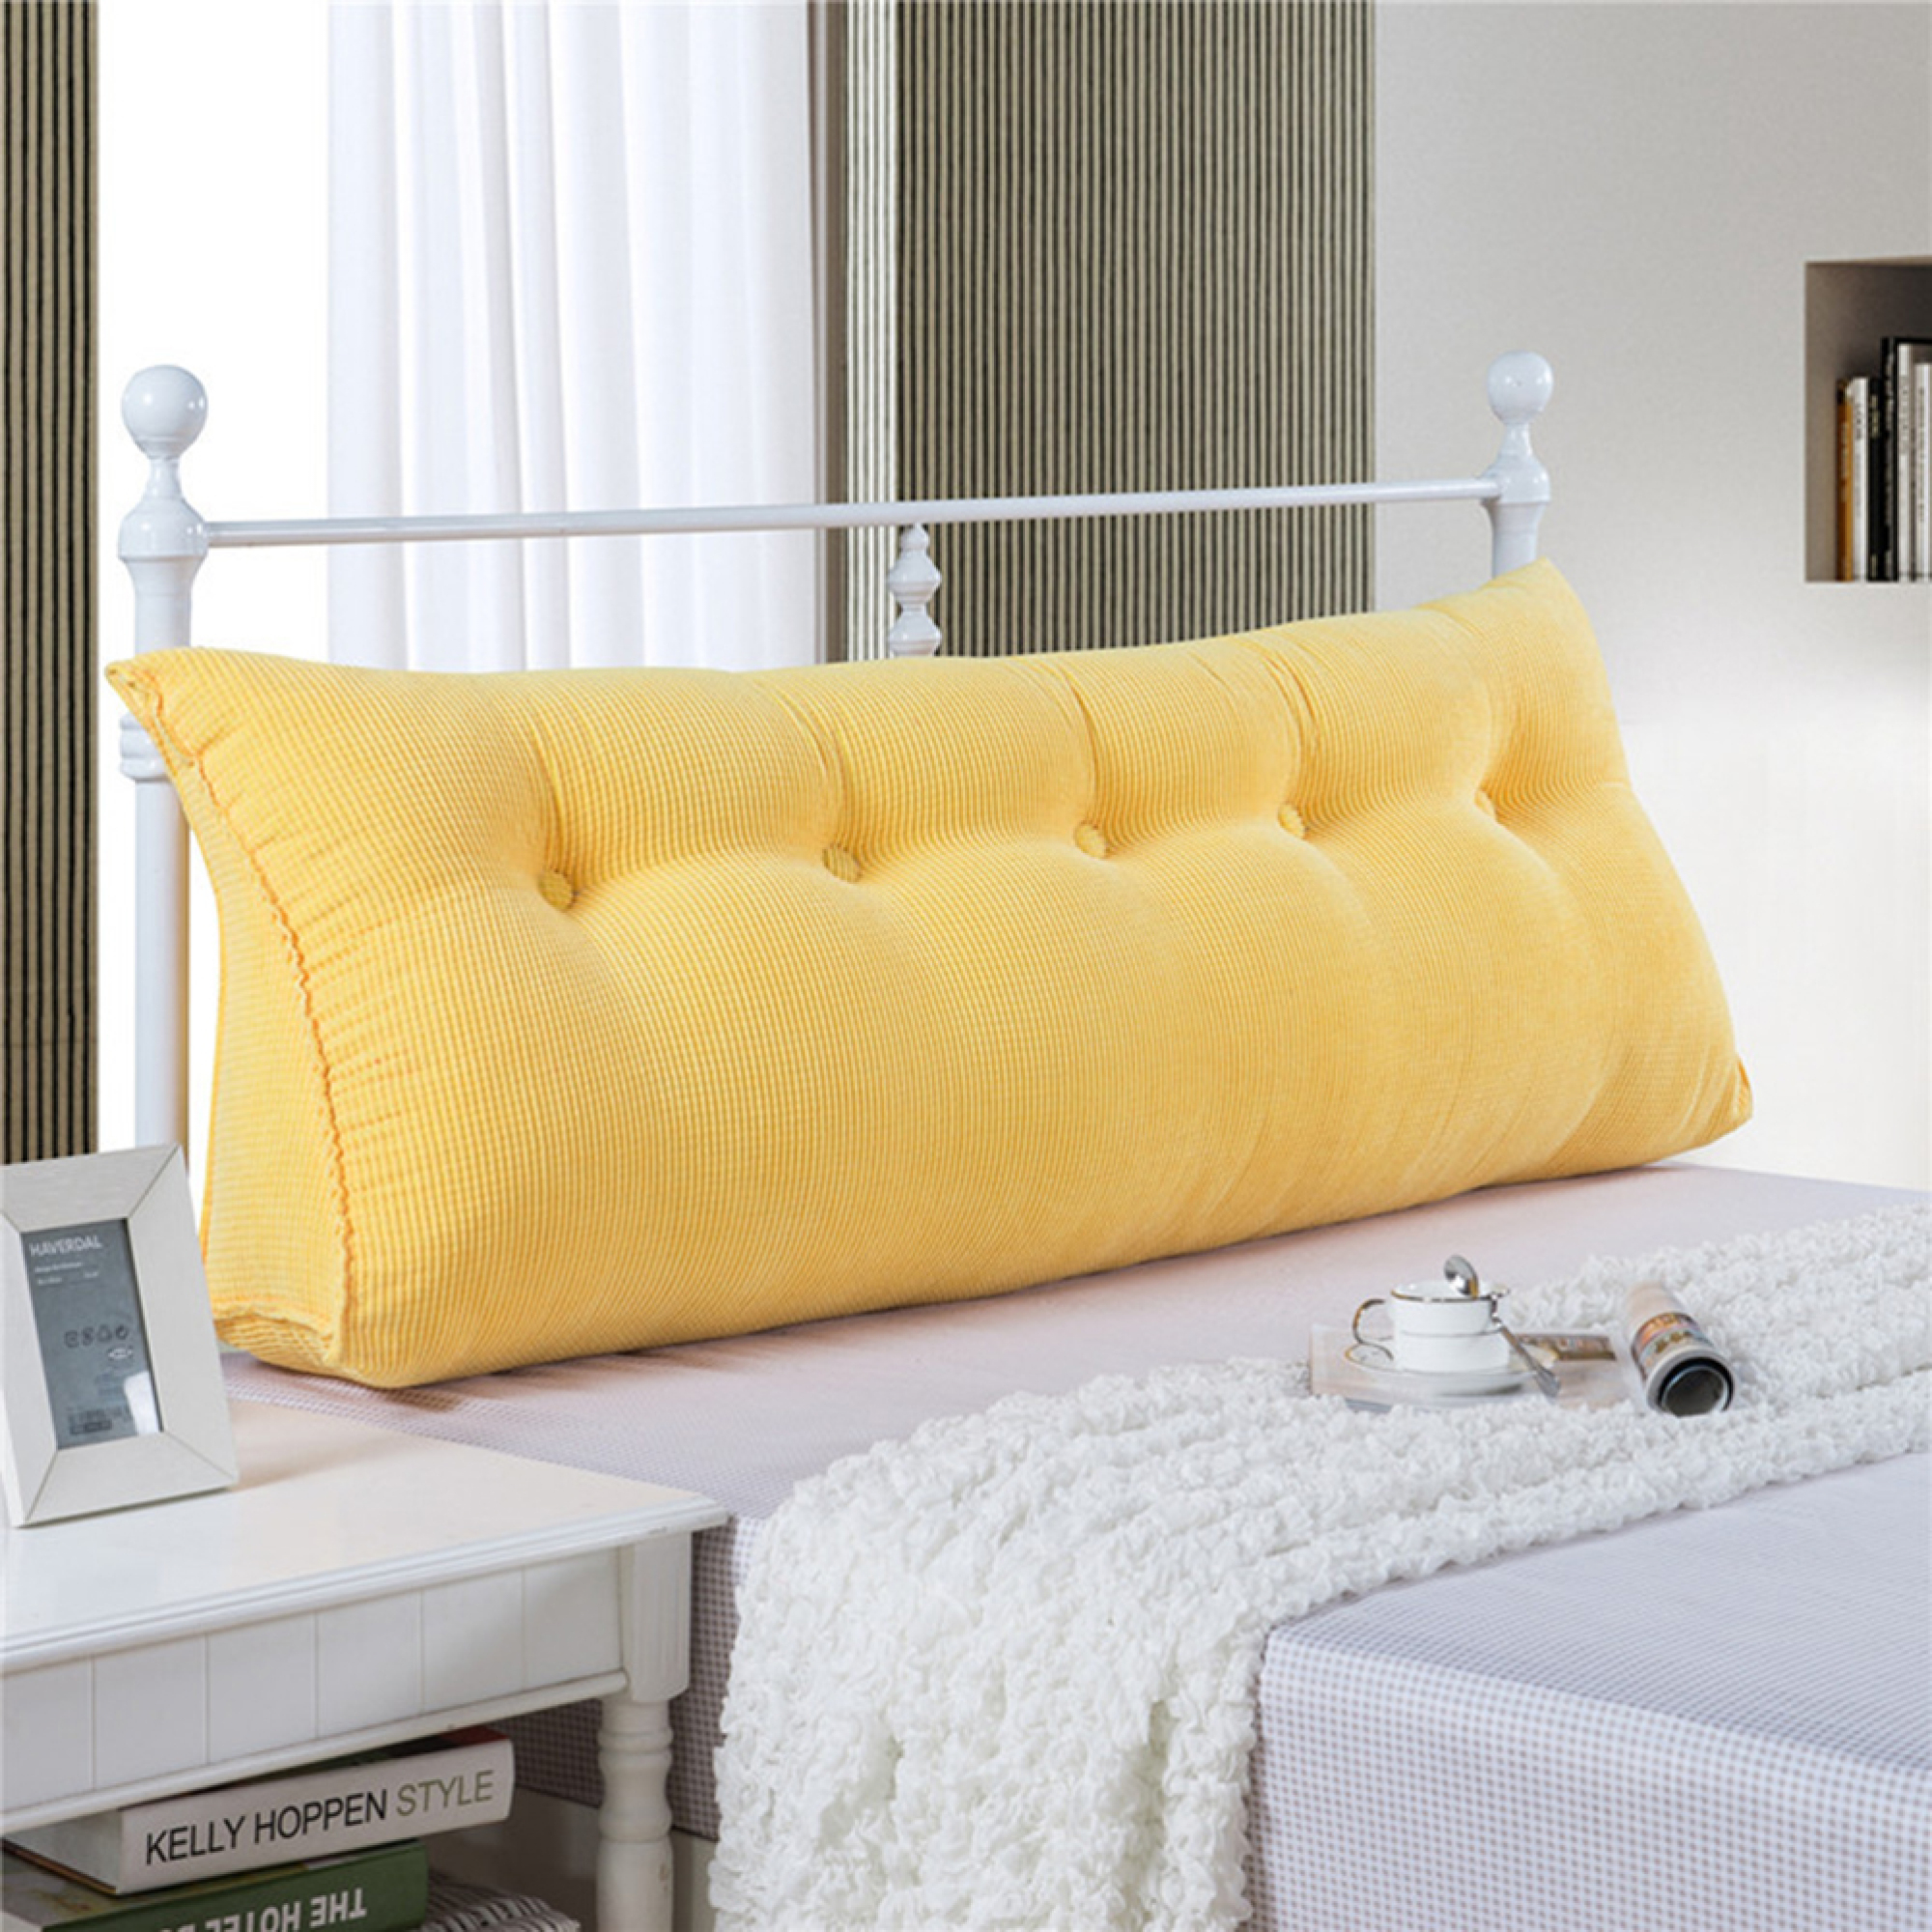 Sofa Bed Large Filled Triangular Wedge Cushion Bed Backrest Positioning  Support Pillow Reading Pillow Office Lumbar Pad with Removable Cover Yellow  ...